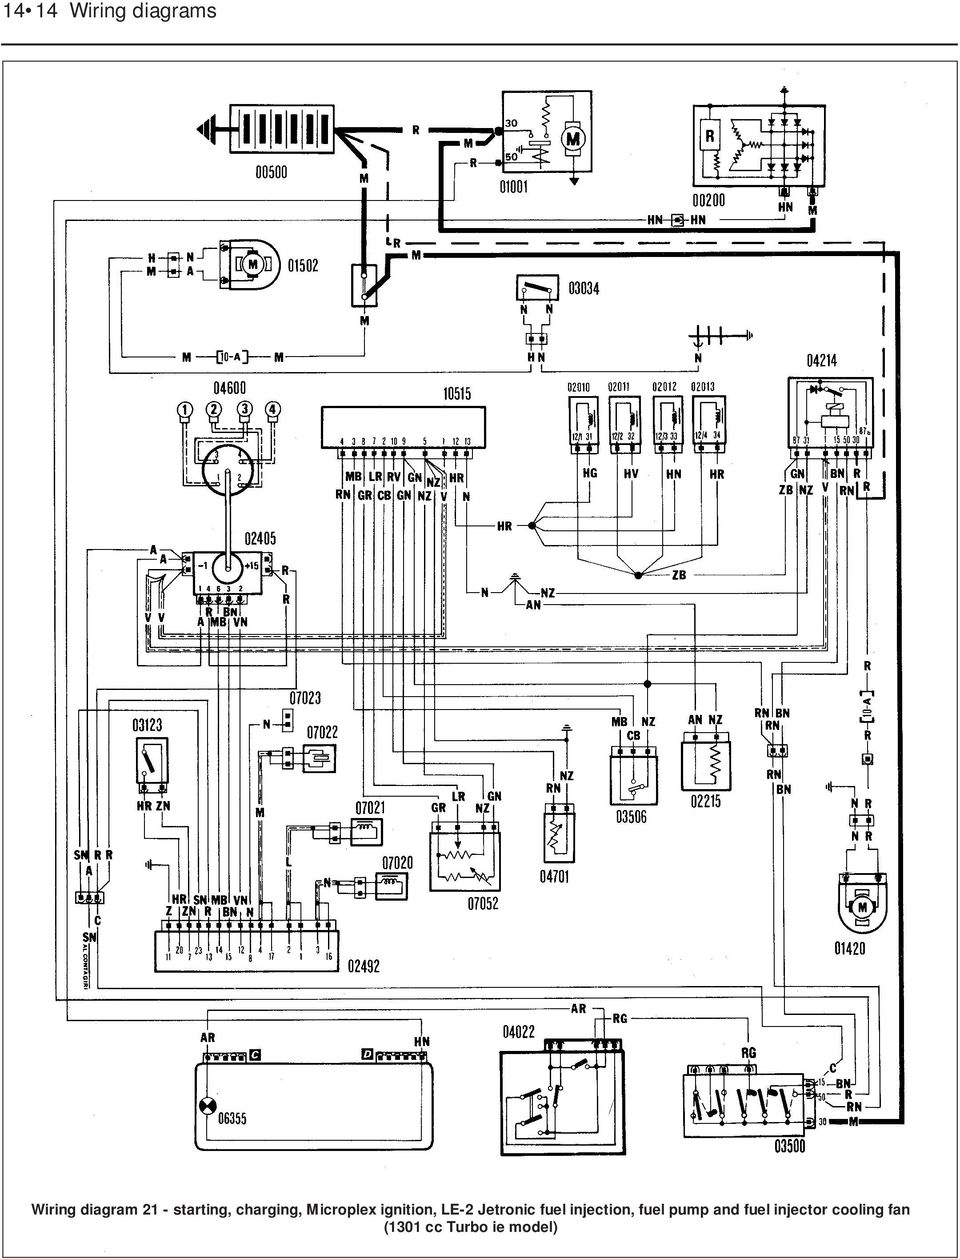 medium resolution of le 2 jetronic fuel injection fuel pump and 15 wiring diagram